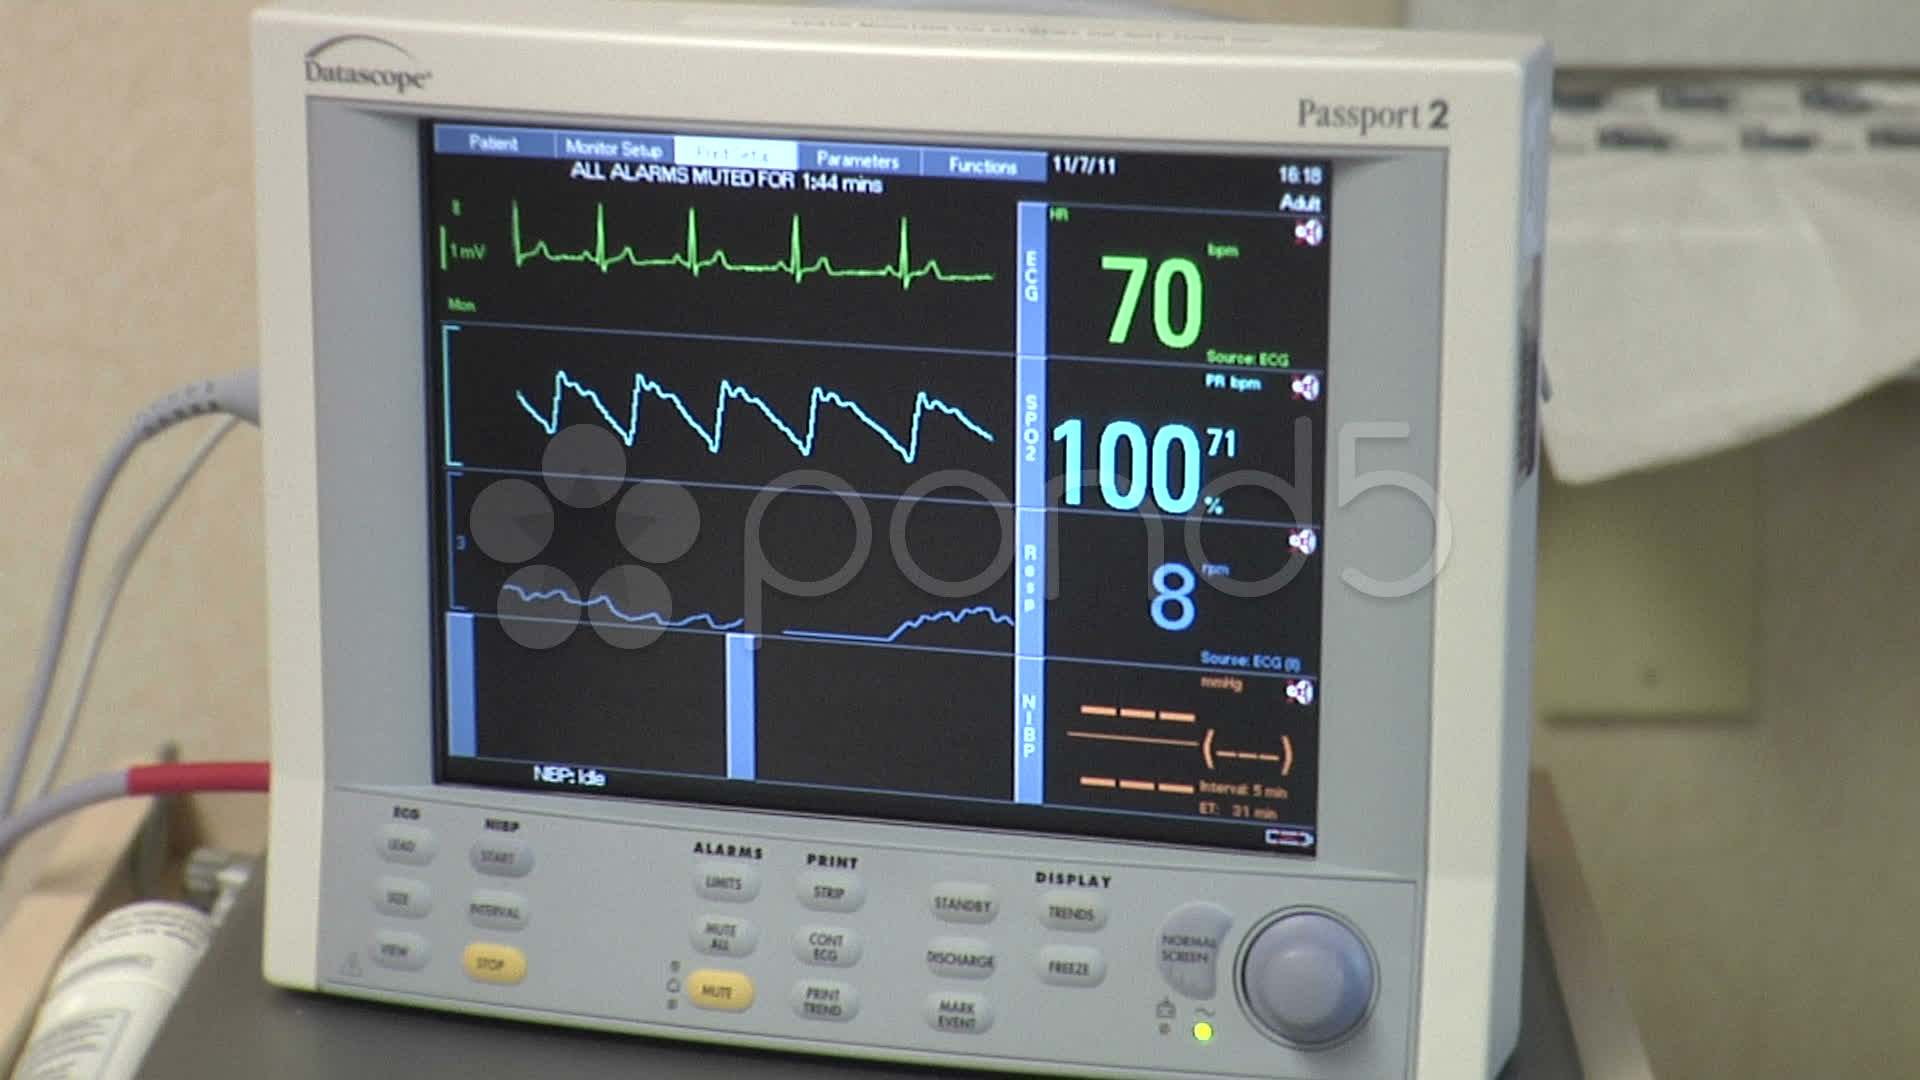 Medical Ekg Heart Rate Monitor At Hospital Footage 8983703